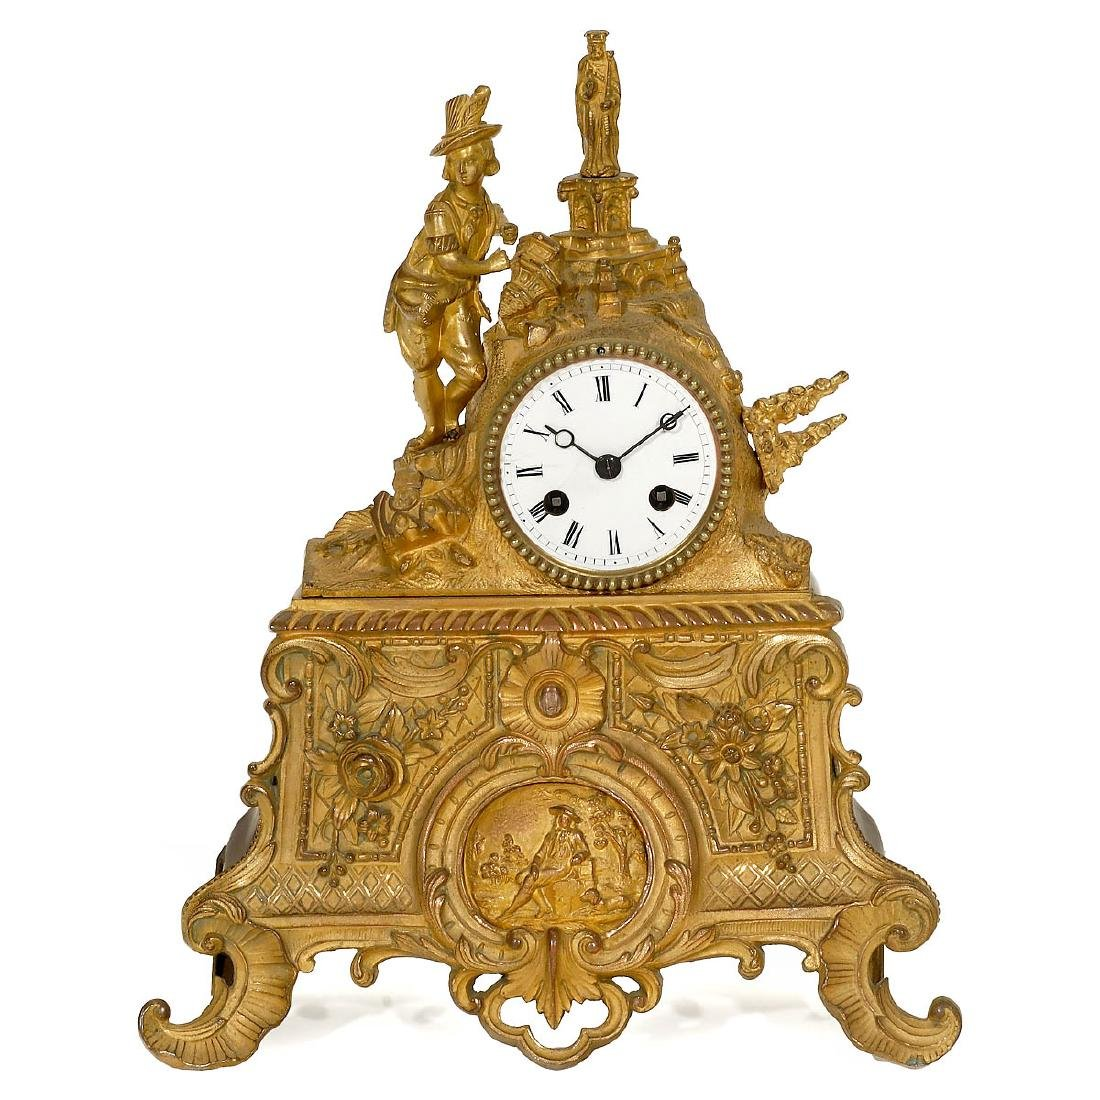 Fire-gilded French Mantel Clock, c. 1860